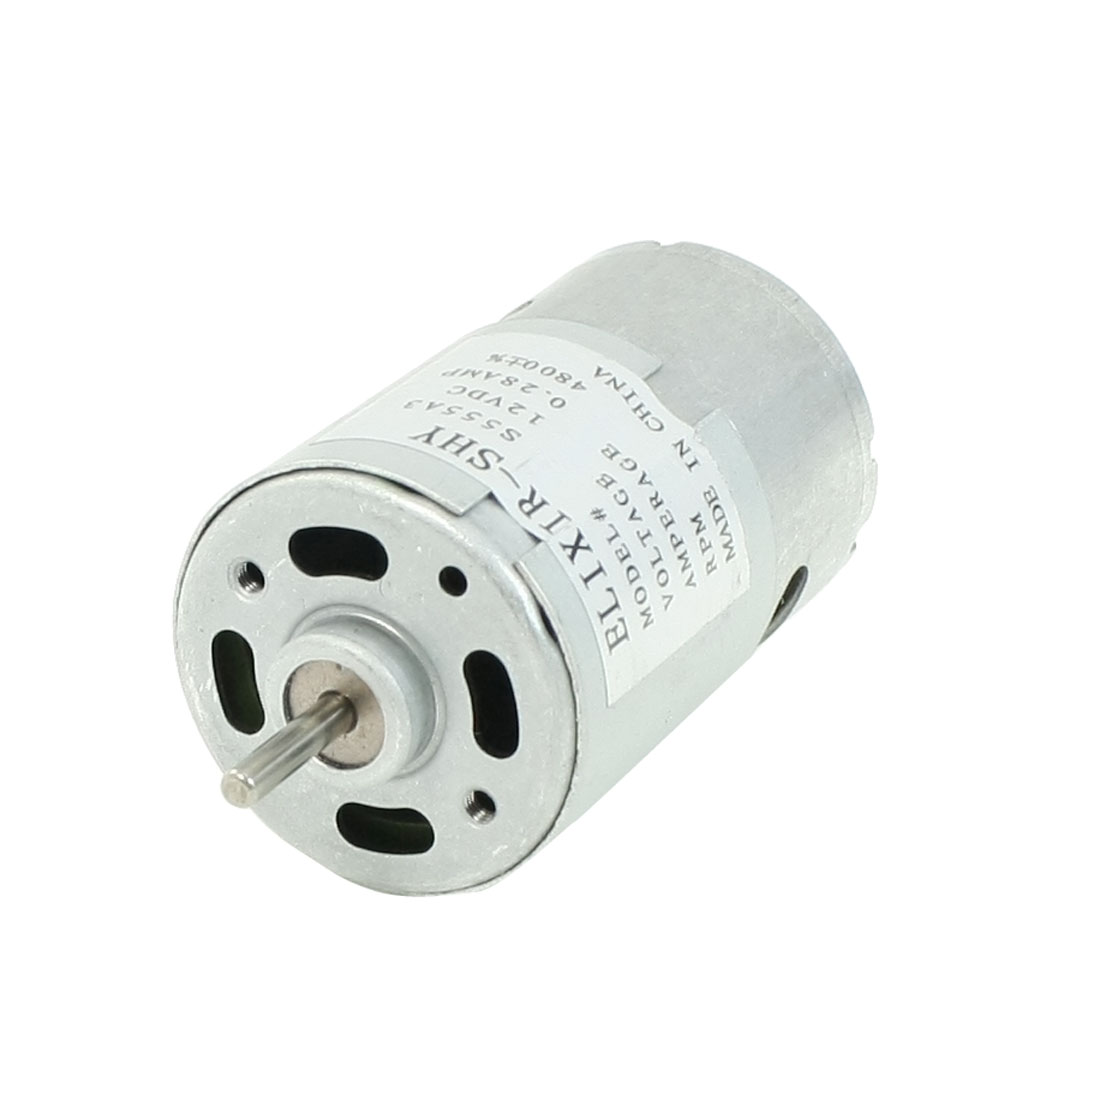 DC 12V 4800RPM 3mmx13mm Dia Shaft 2P Gear Motor Replacement Parts